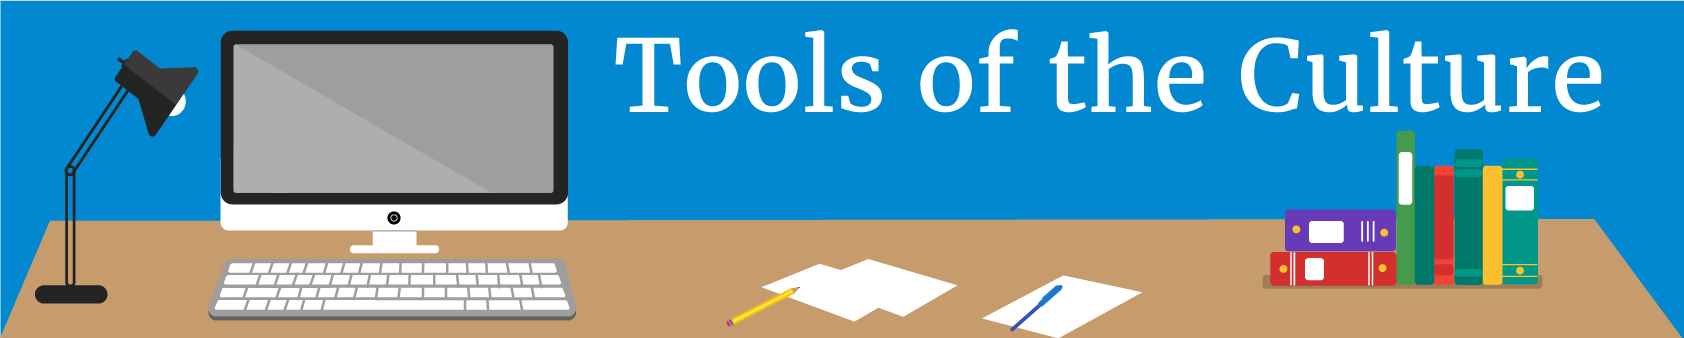 tools-of-the-culture